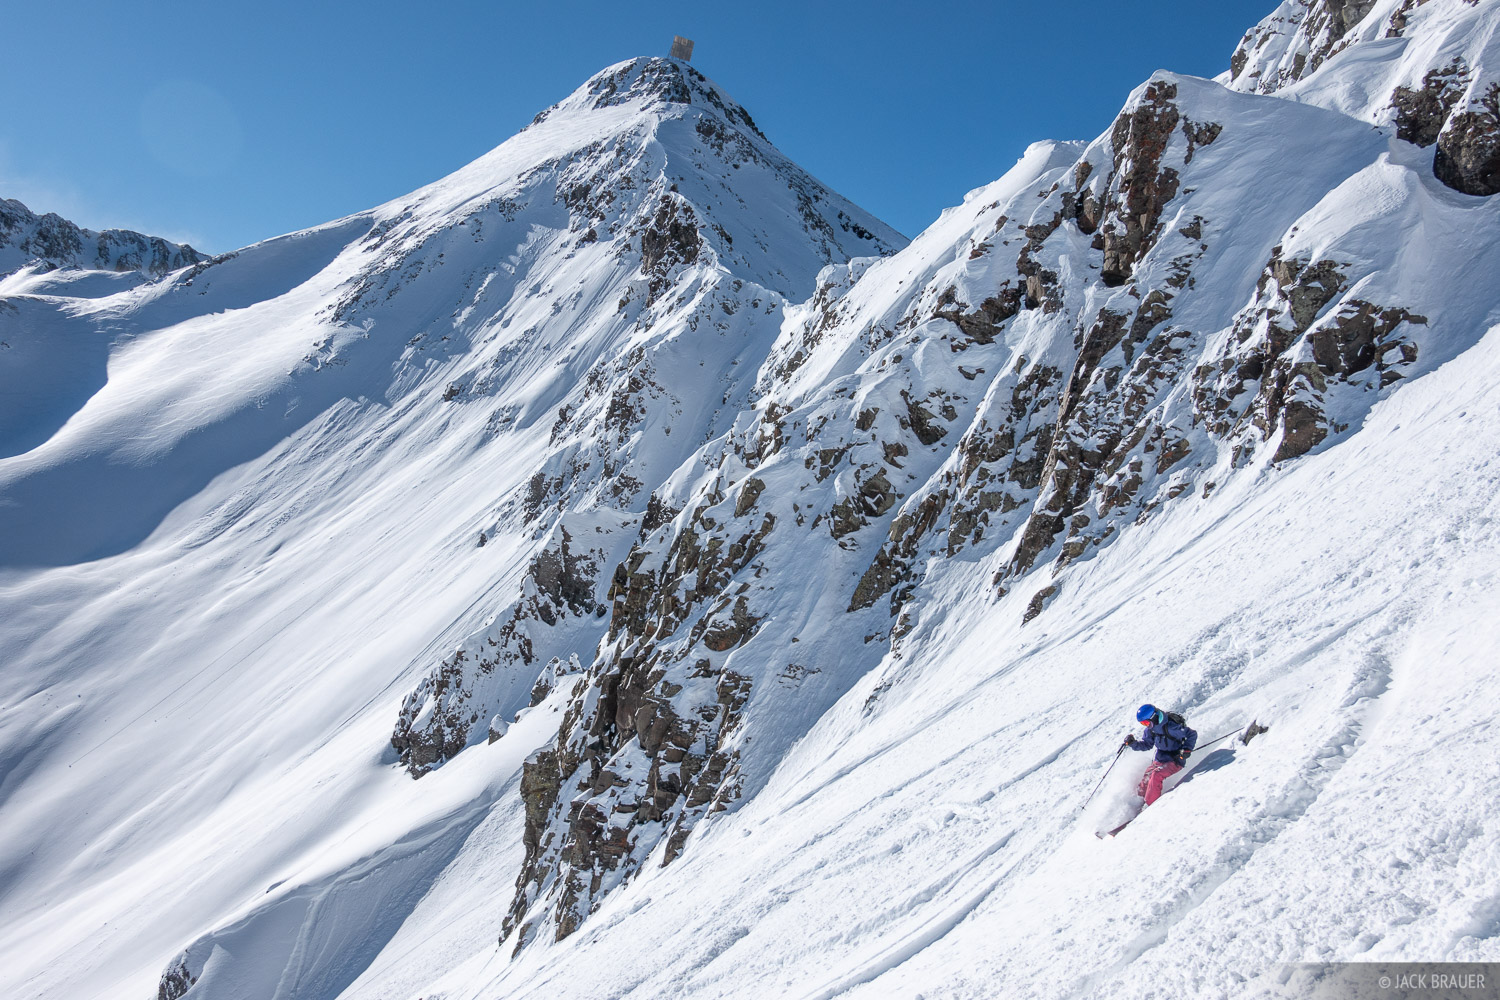 Colorado, San Juan Mountains, Silverton Mountain, skiing, Silverton, January, photo